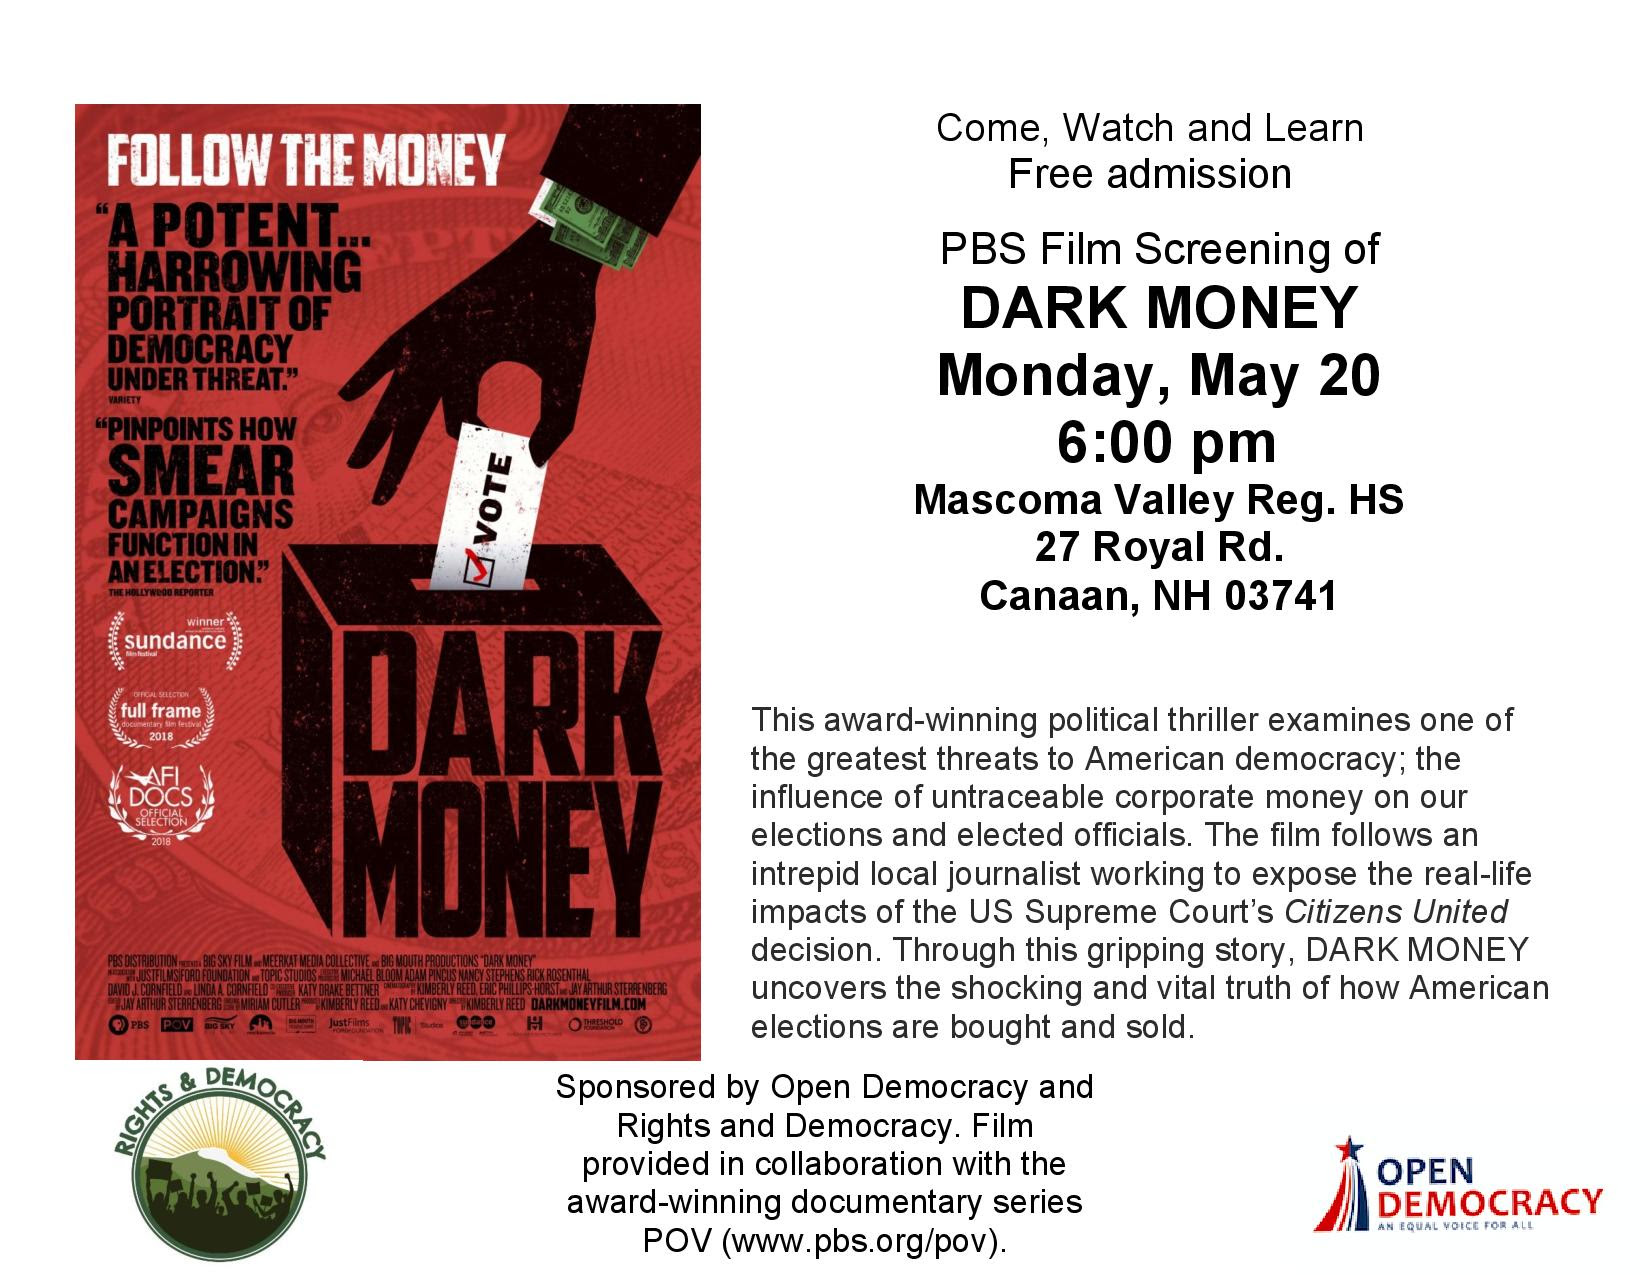 Poster for screening of Dark Money film